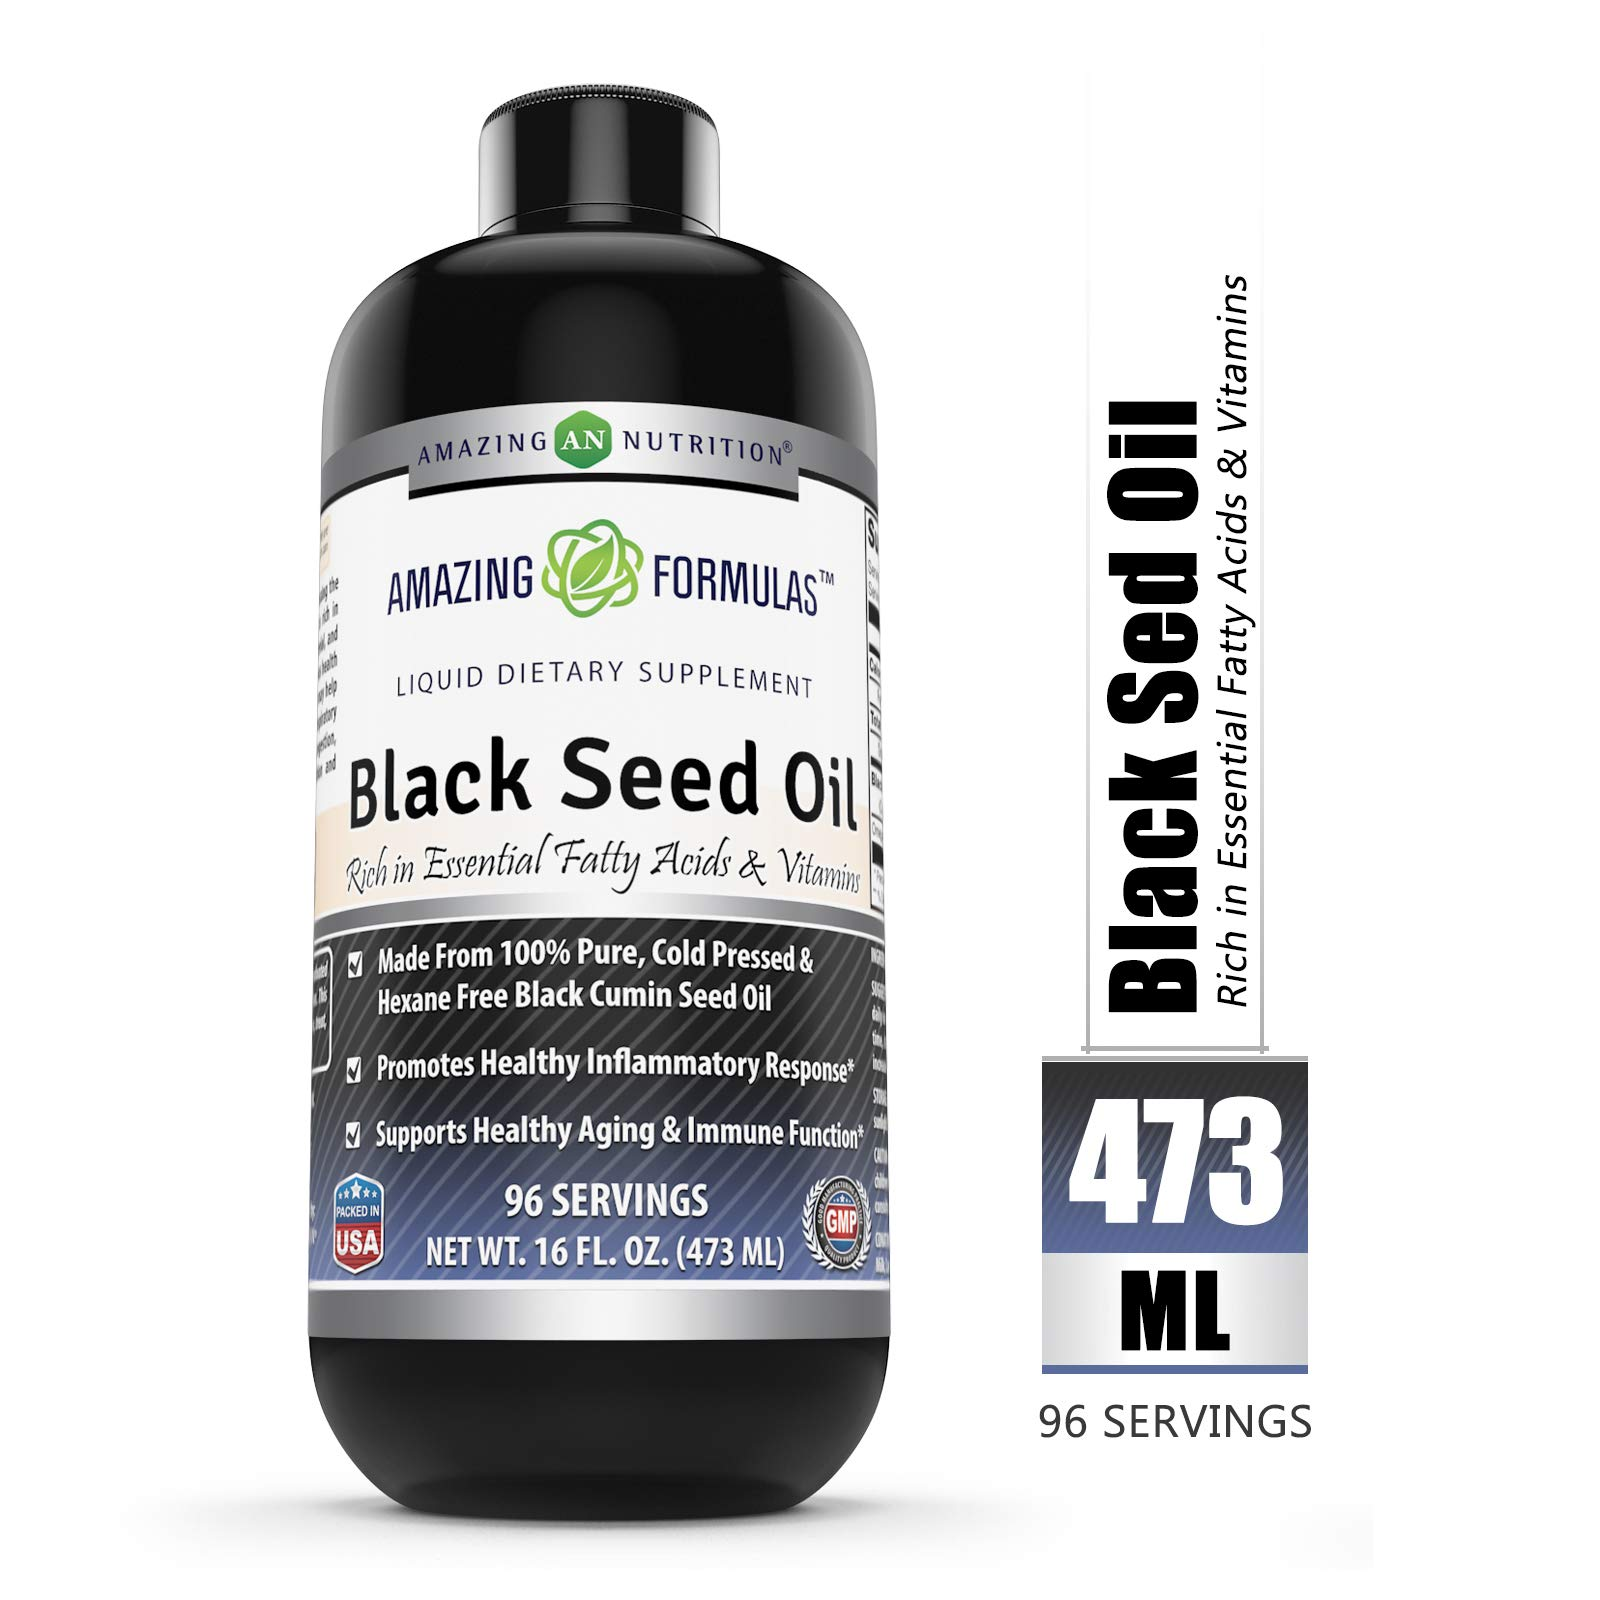 Amazing Formulas Black Seed Oil Natural Dietary Supplement - Cold Pressed Black Cumin Seed Oil from 100% Genuine Nigella Sativa - 16 oz. Bottle by Amazing Nutrition